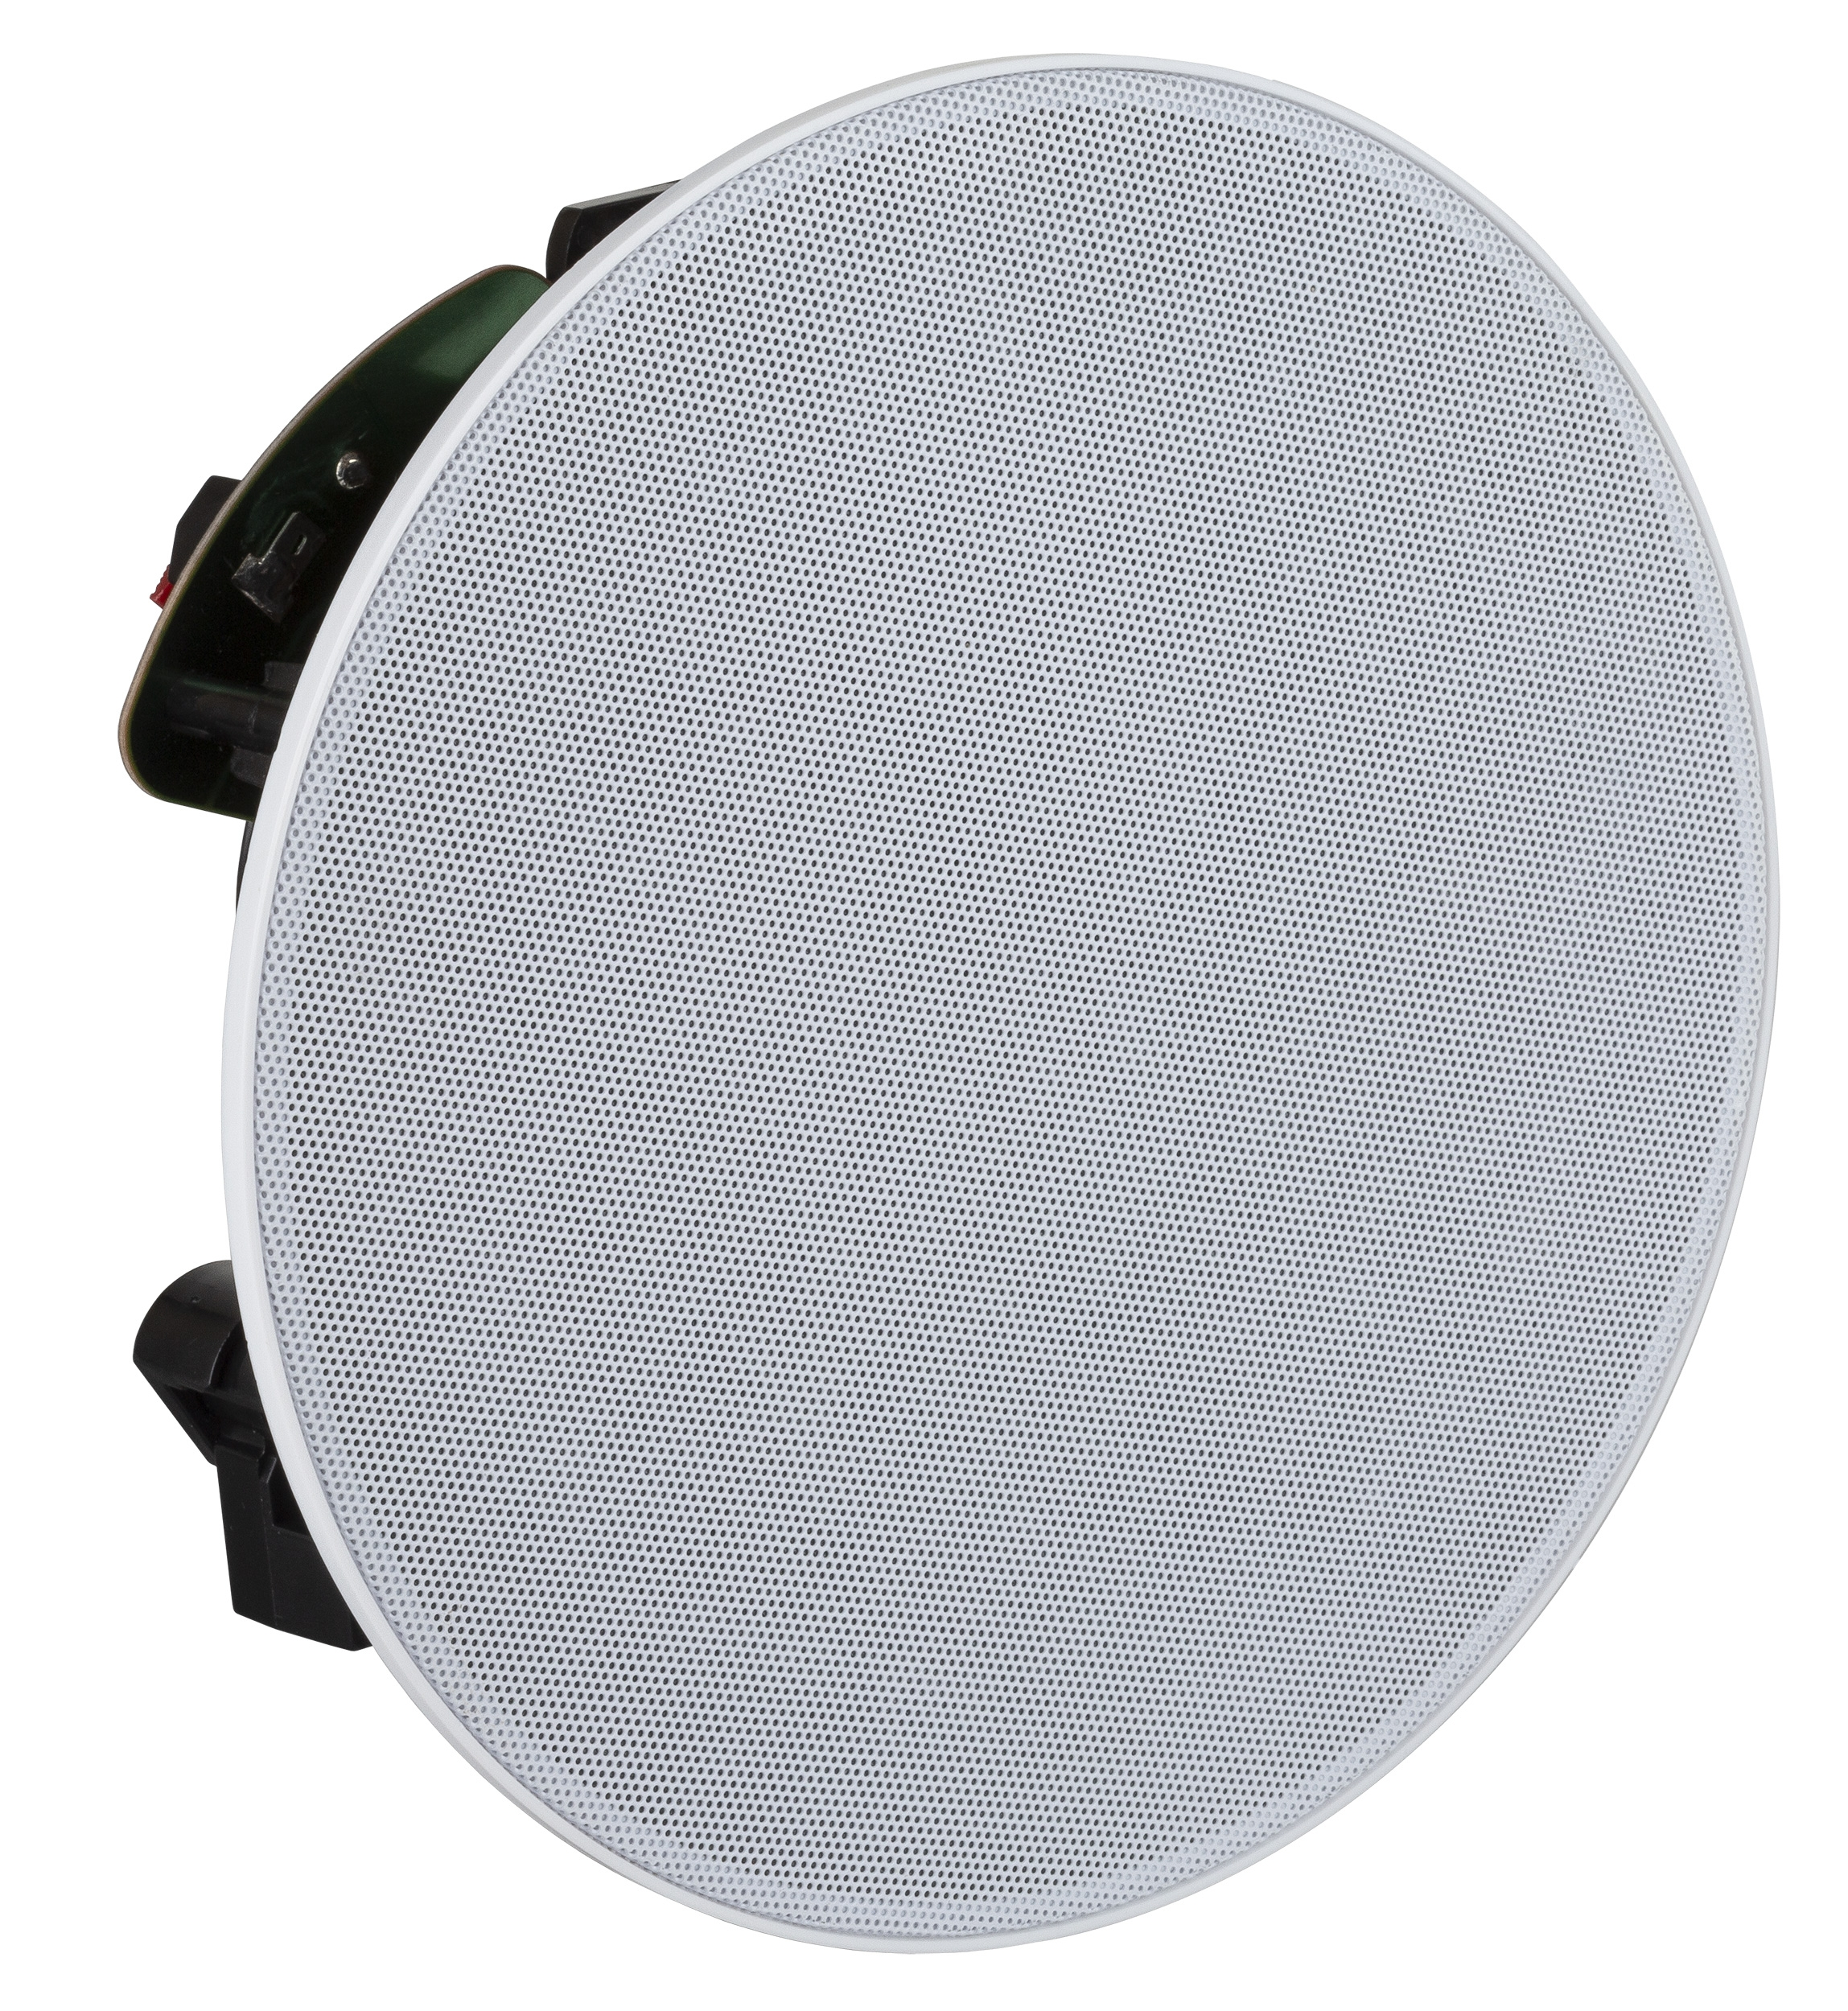 Recessed ceiling speaker for 100V and 8 Ohms amplifiers